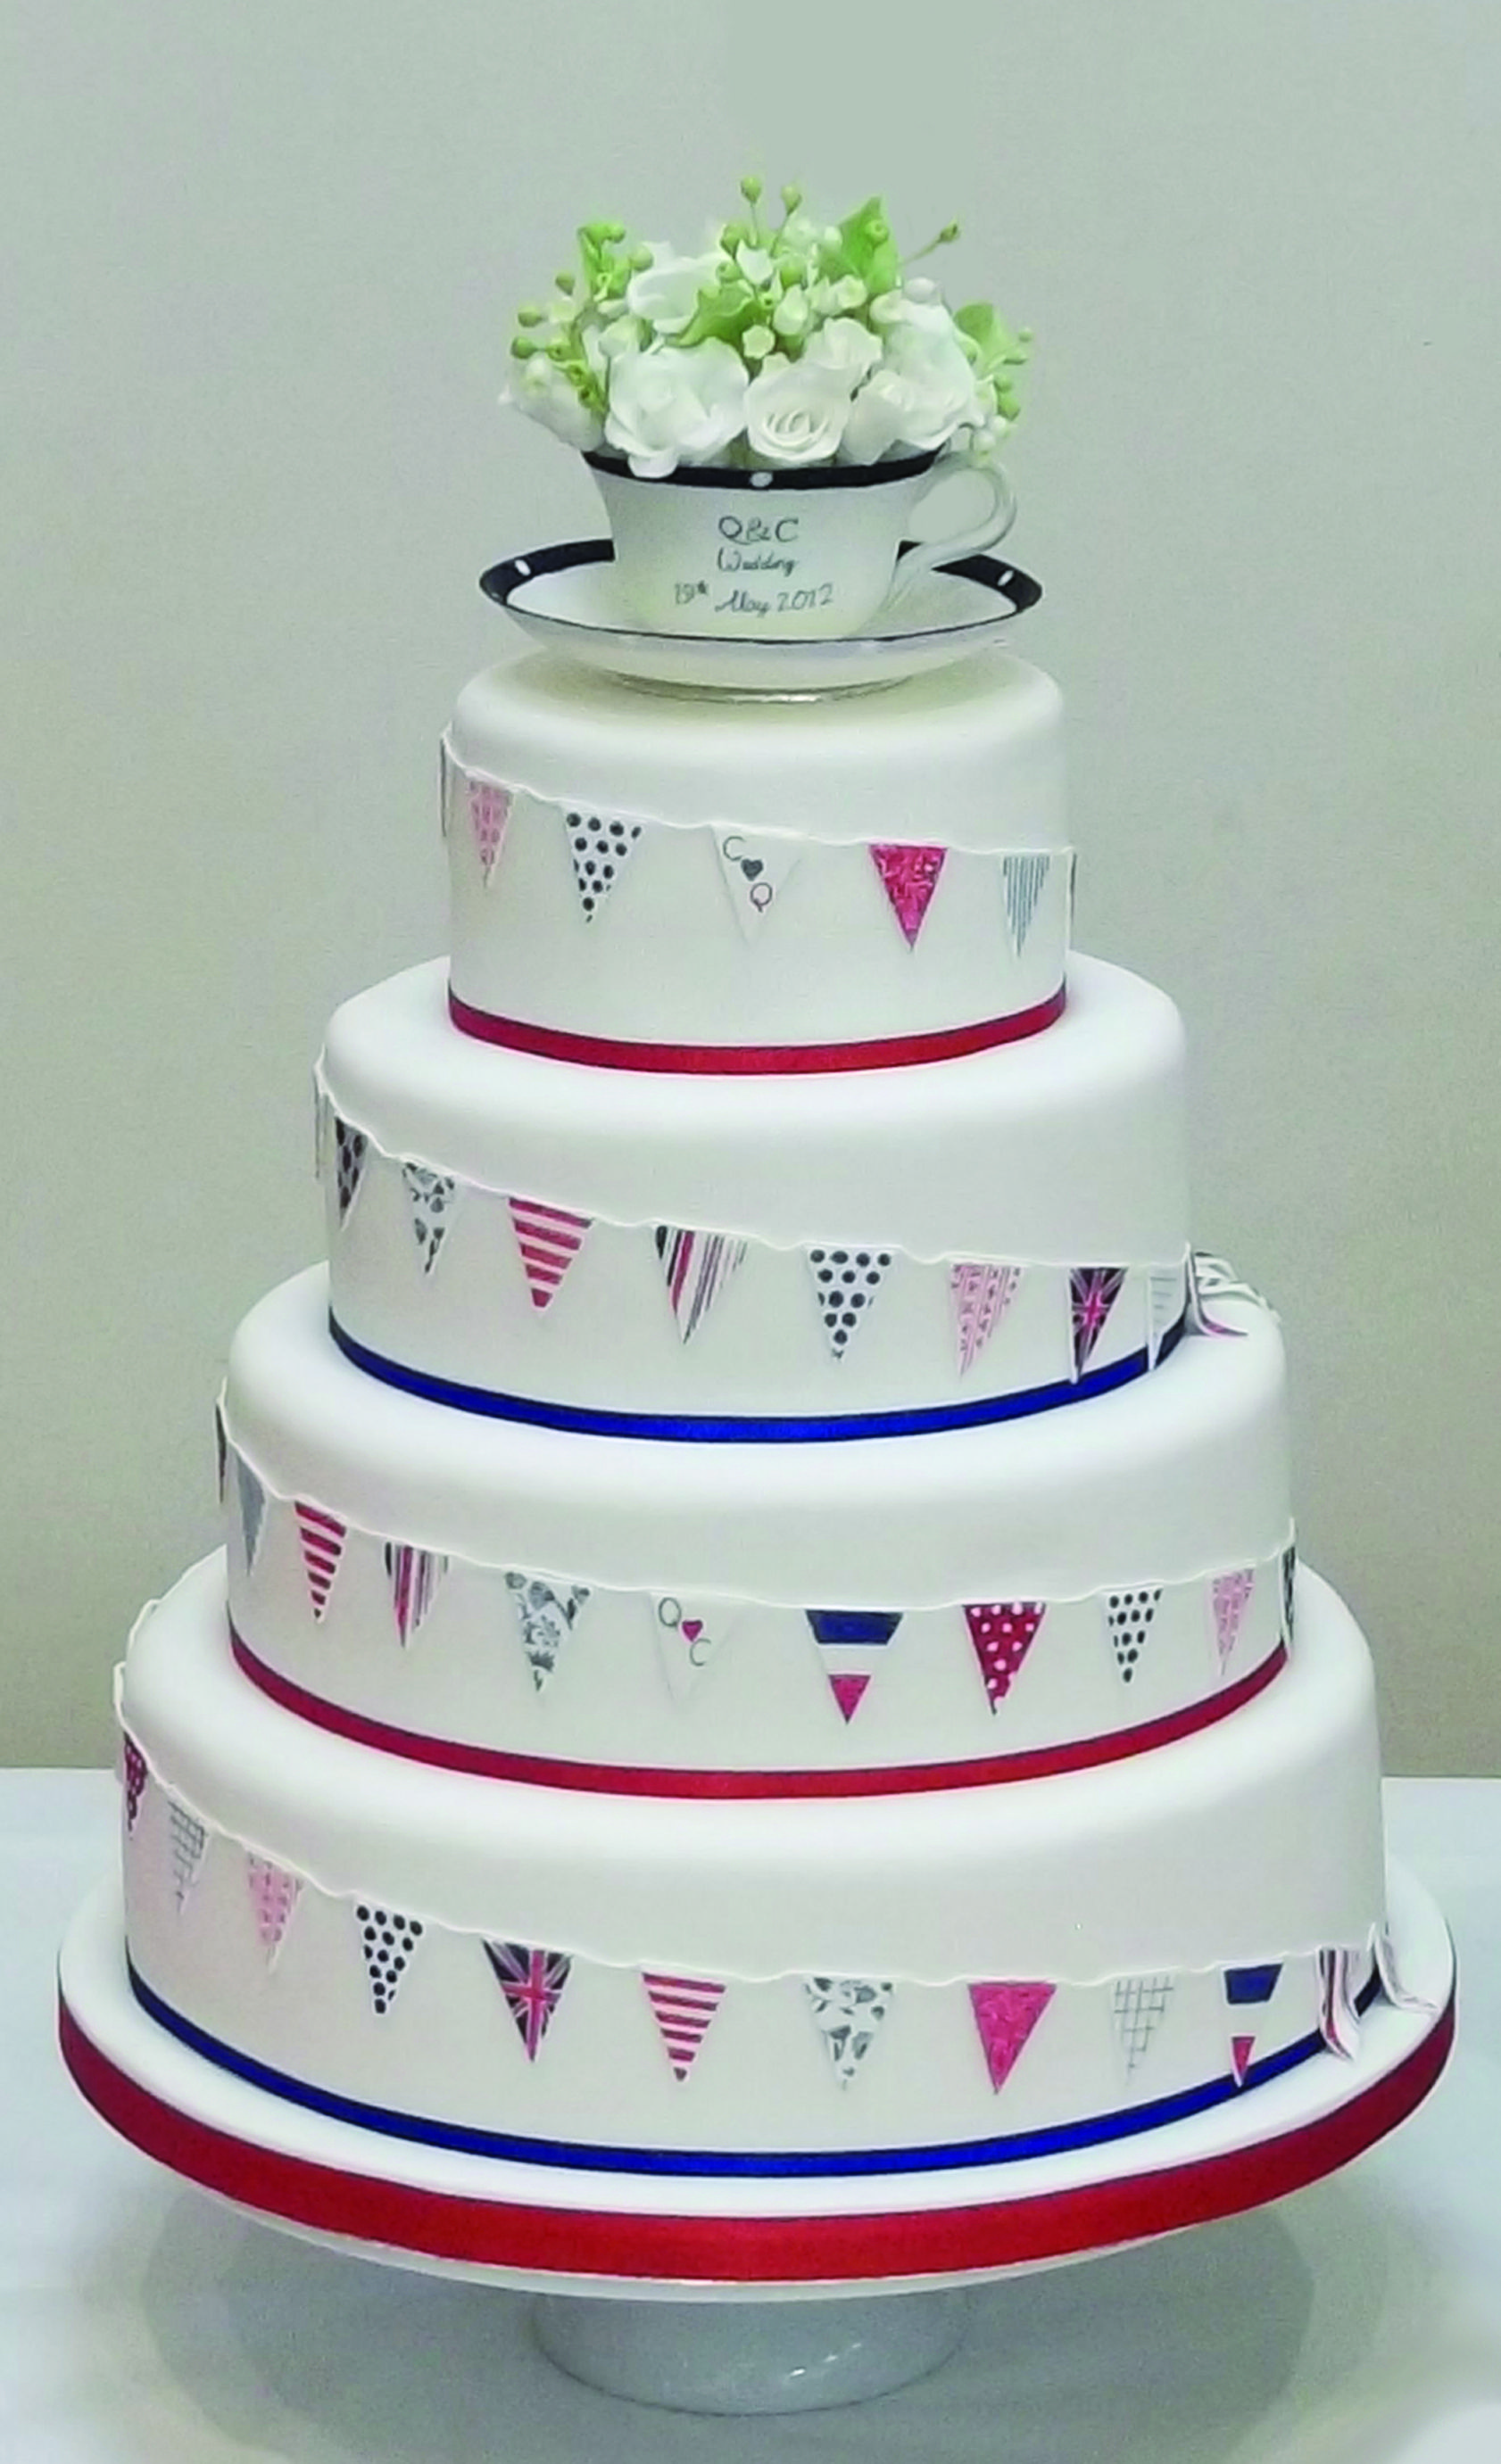 Pin by Jayne Worboys on My Cakes | Pinterest | Wedding cake and Cake